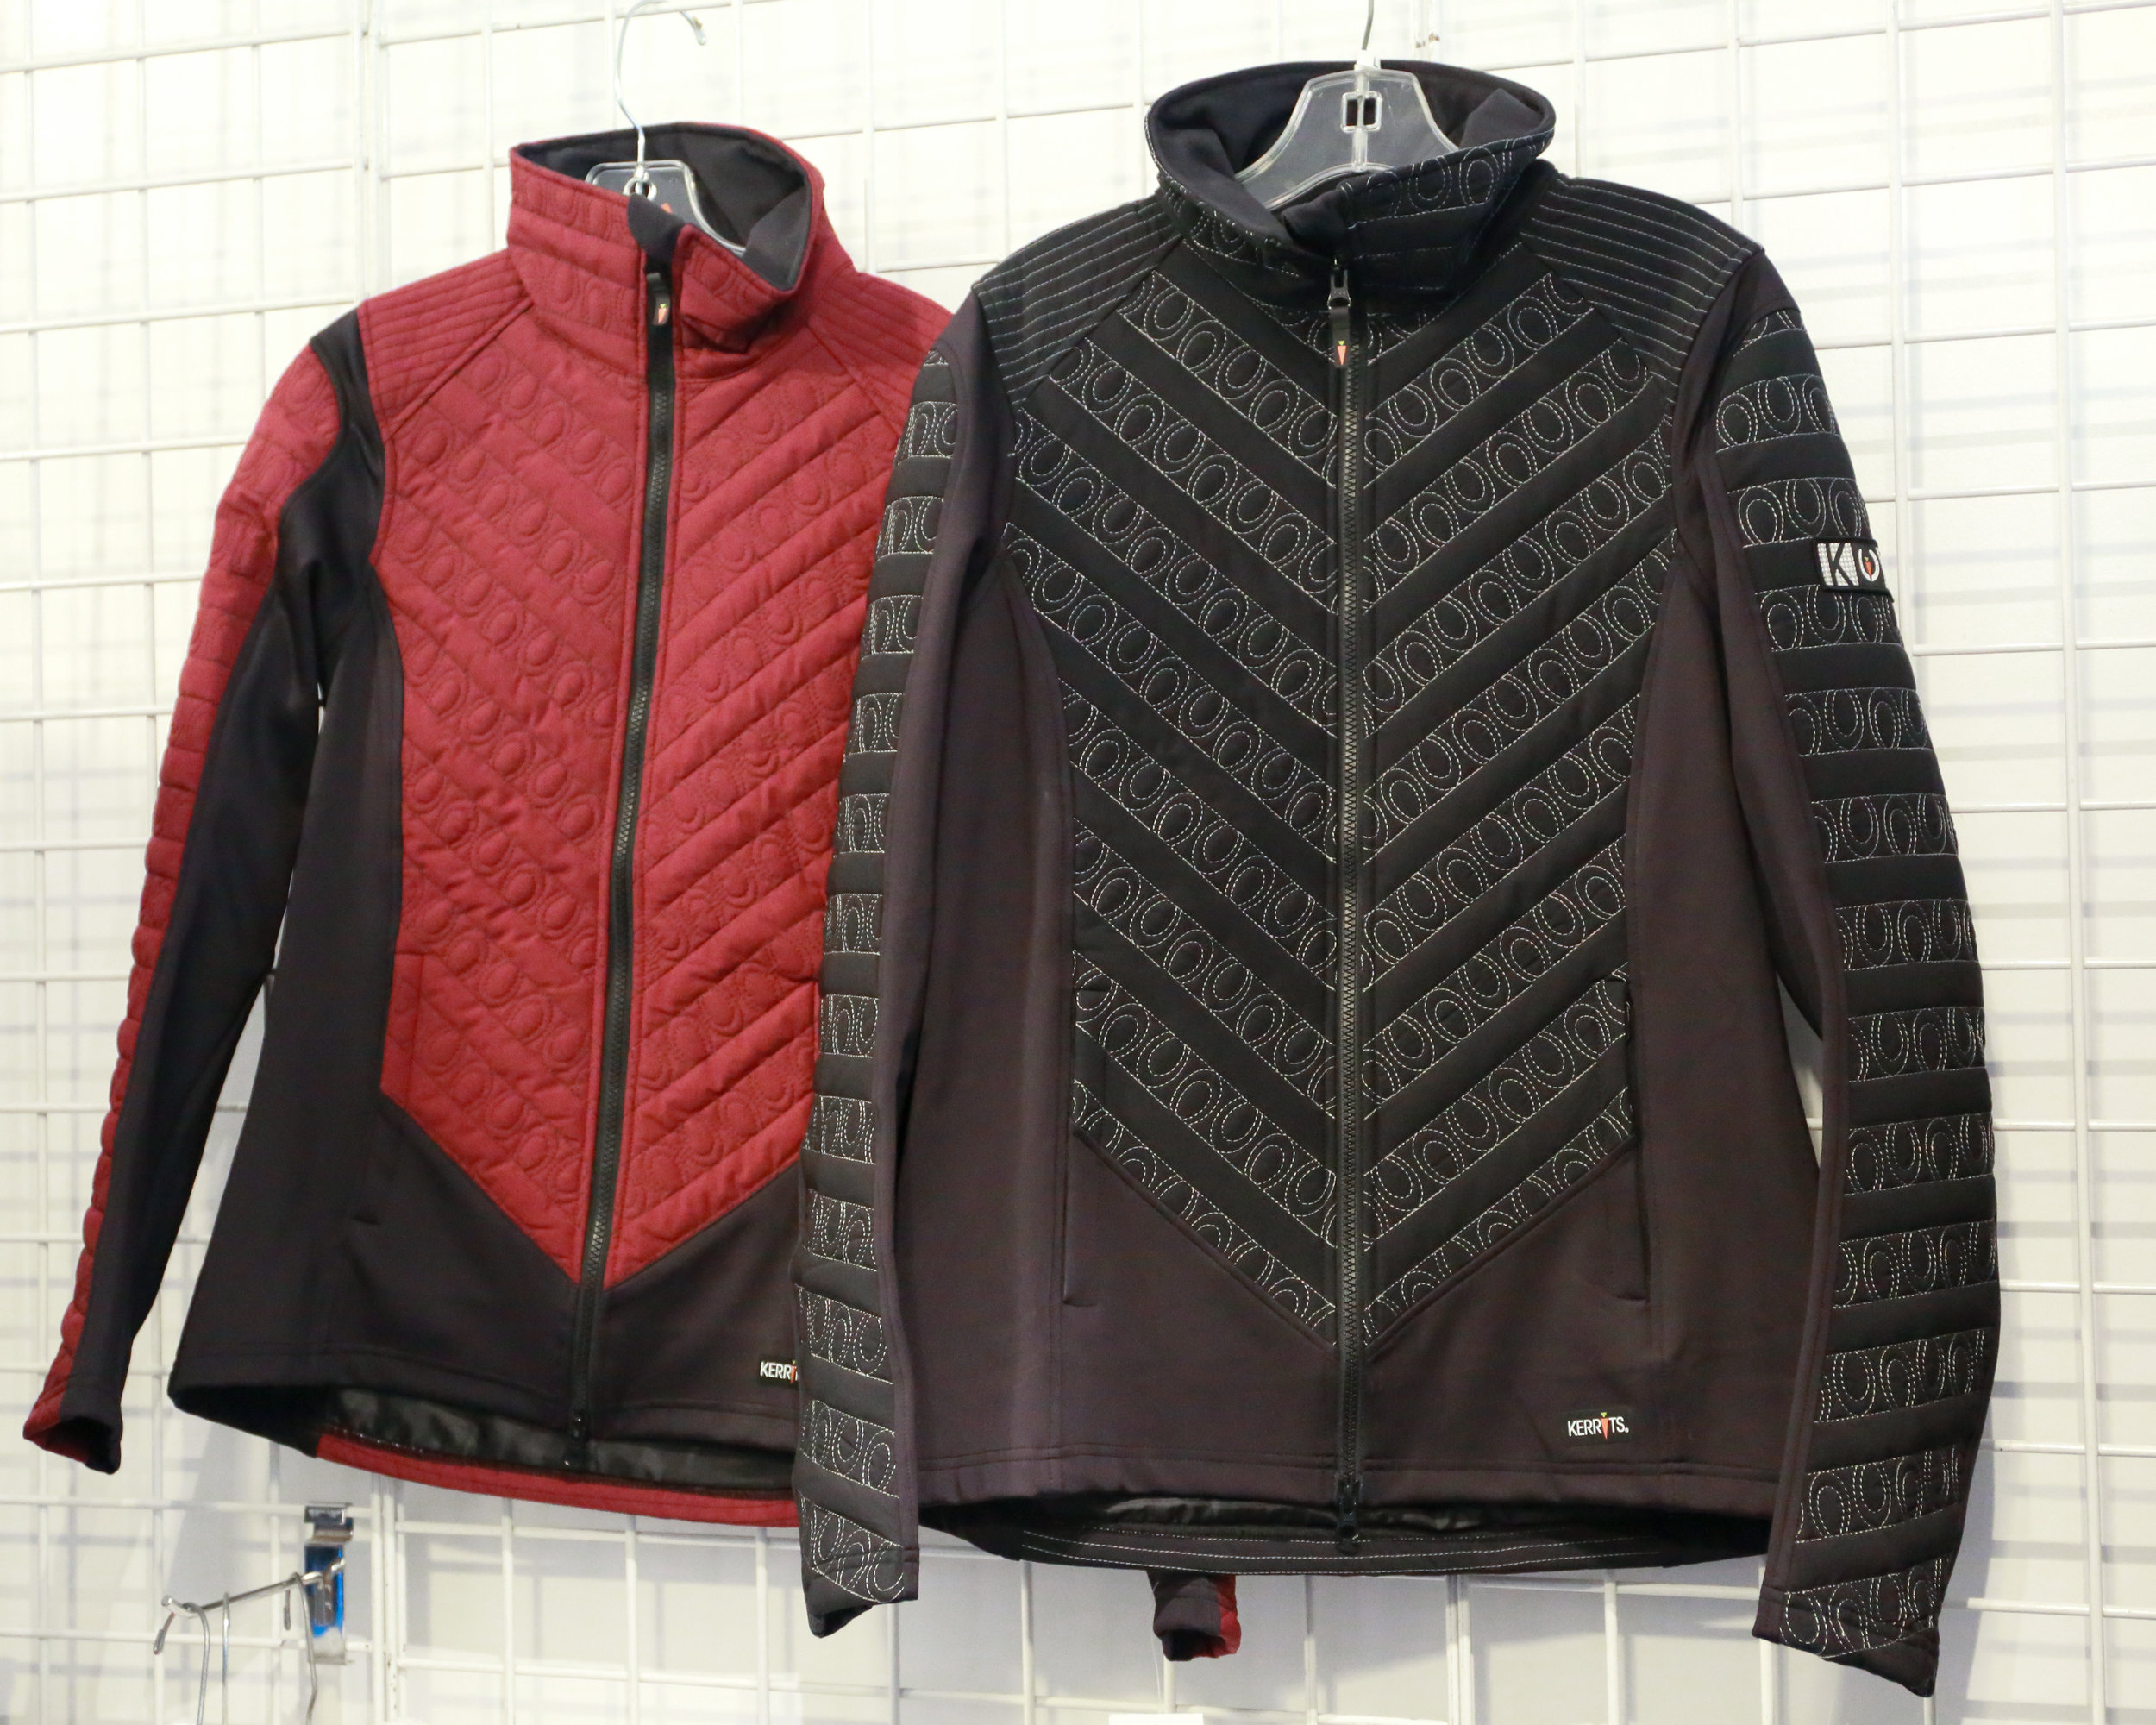 Kerrits Jacket - On Track Jacket. Runs long but classic look with attention to detail. $119.00, NOW 60$